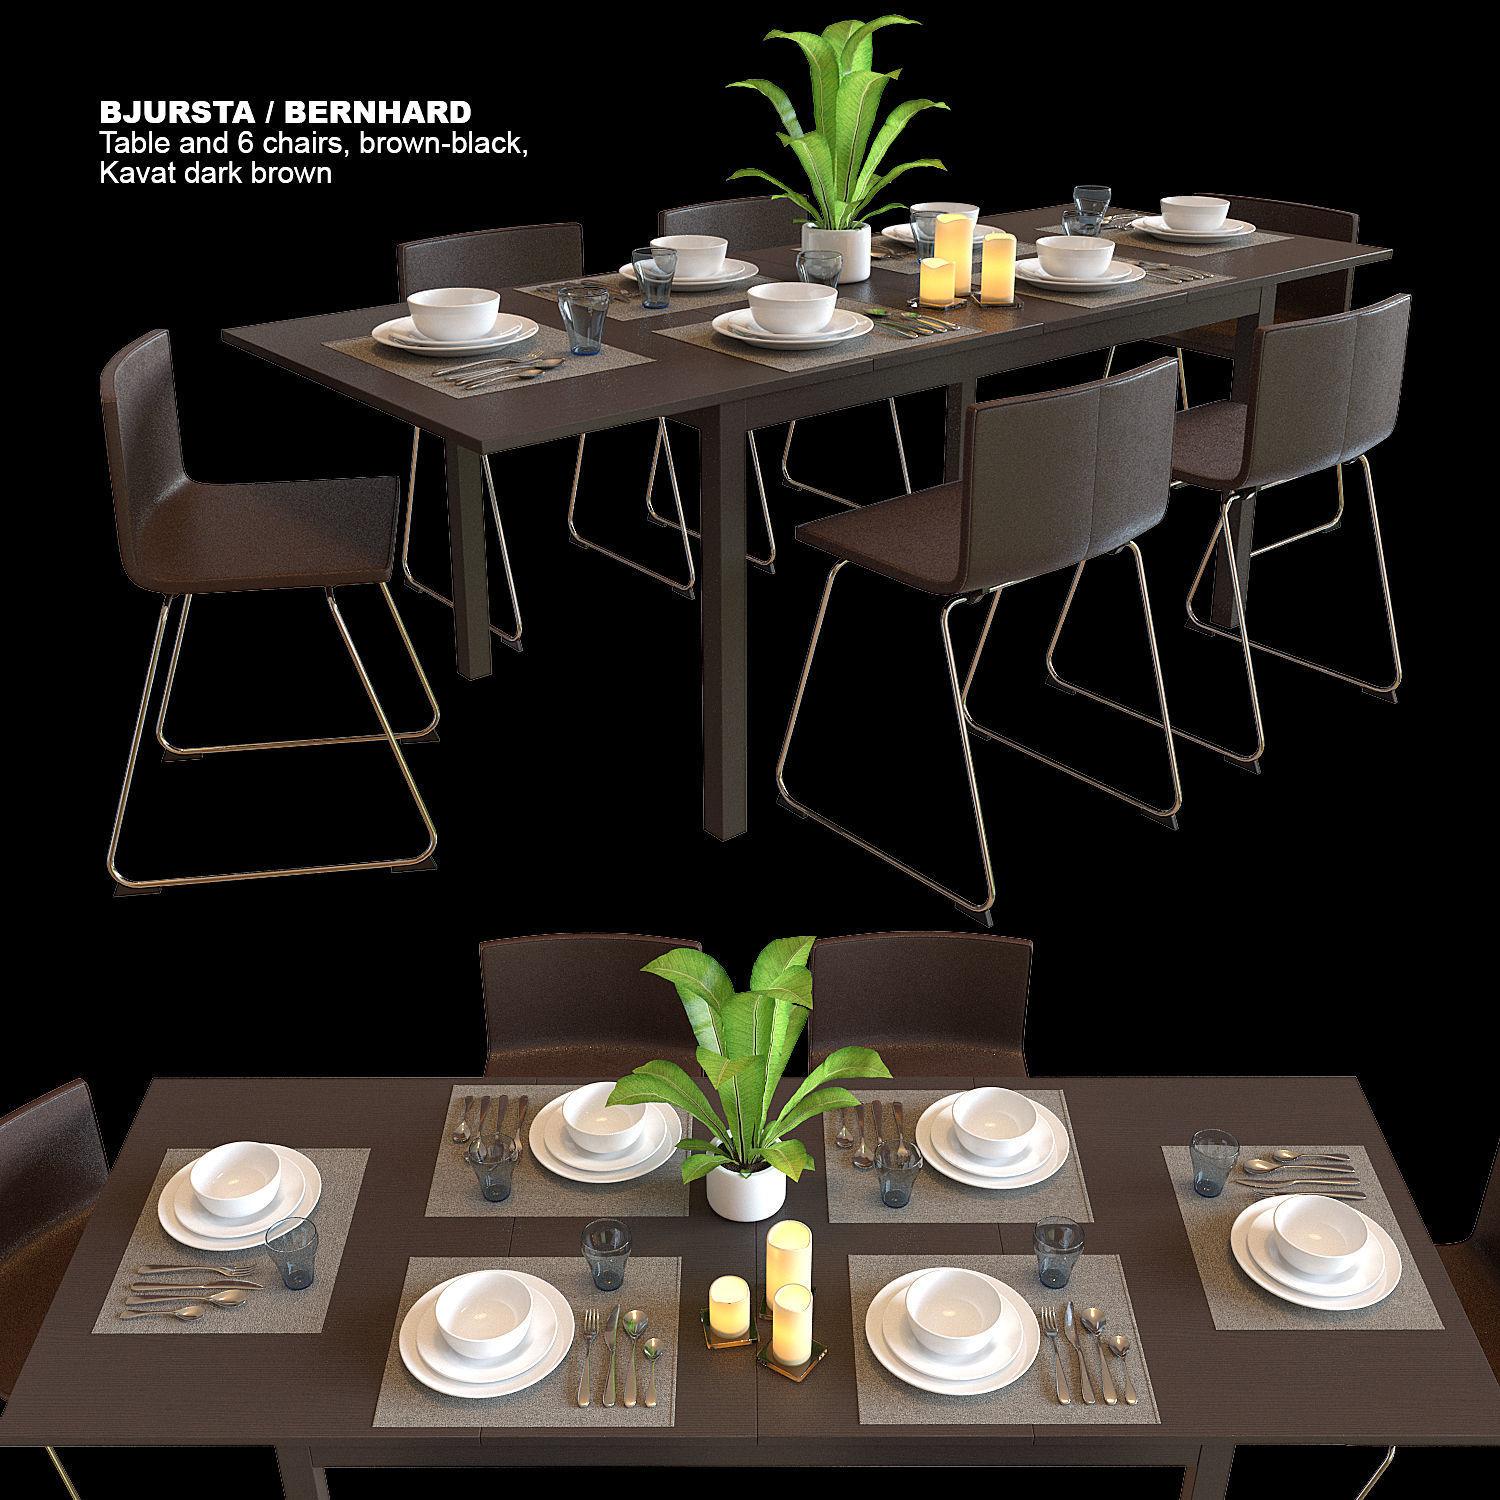 3d Table And Chairs Ikea Bjursta Bernhard Cgtrader